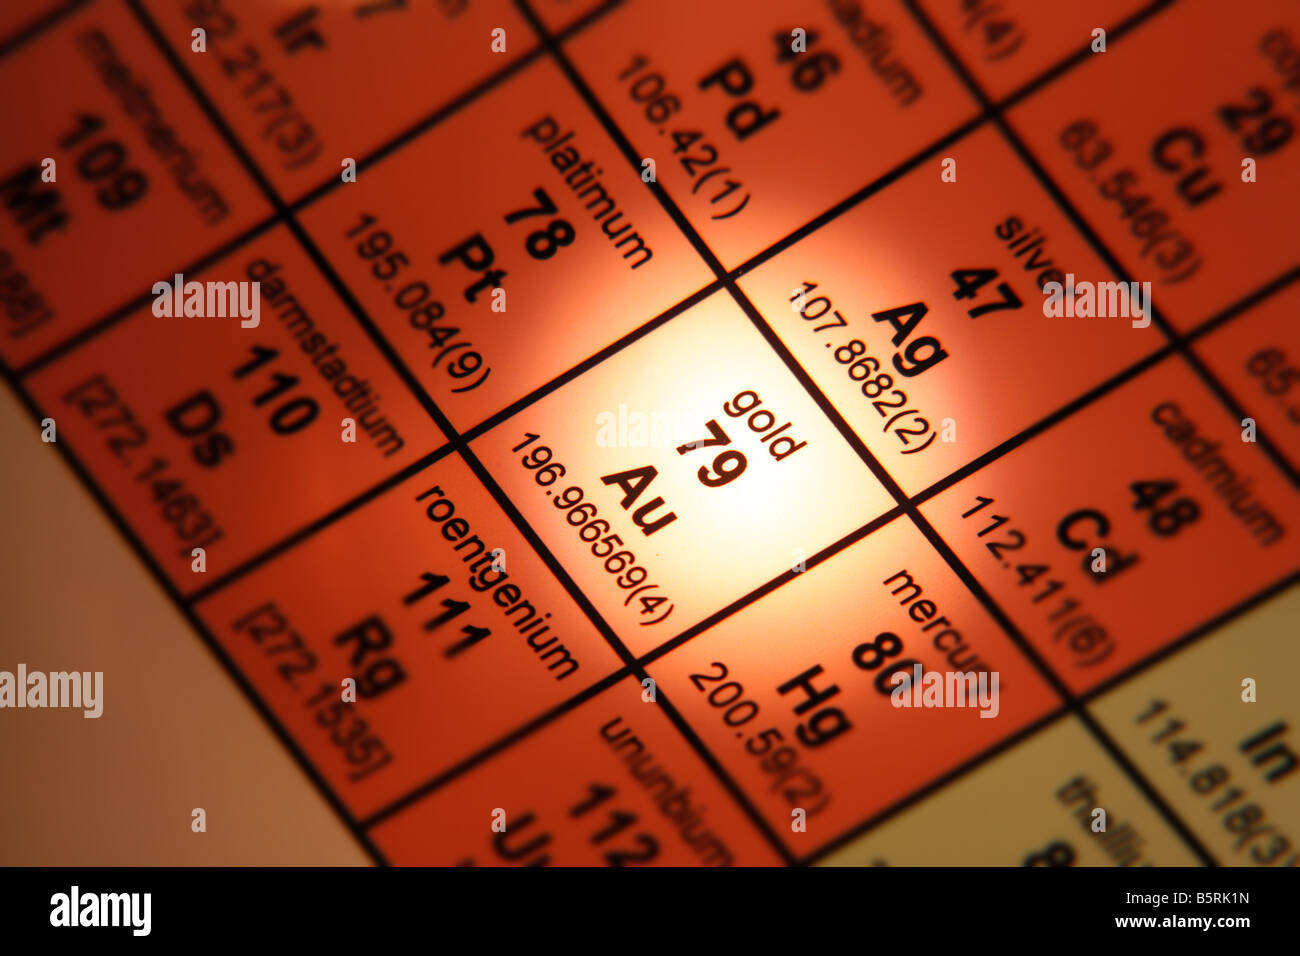 Periodic table of elements gold au stock photo 20803489 alamy periodic table of elements gold au urtaz Choice Image